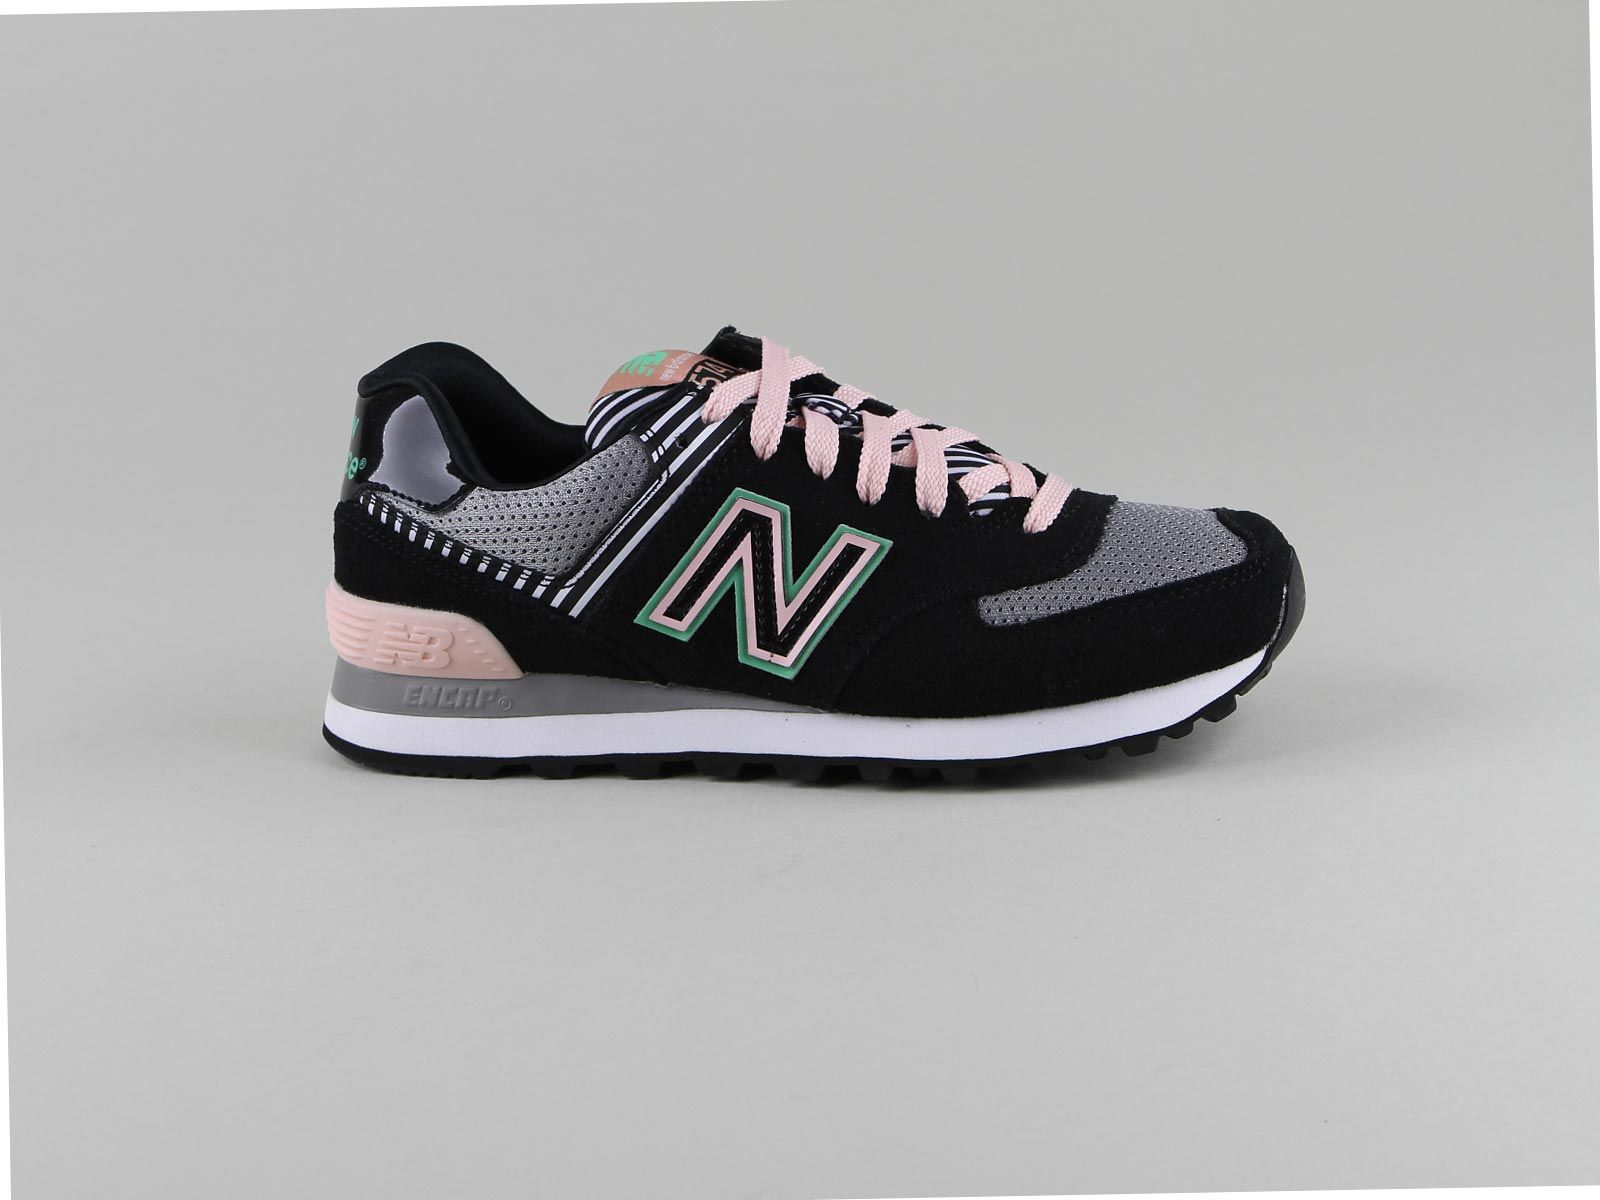 574 TEXTILE BRIGHT - CHAUSSURES - Sneakers & Tennis bassesNew Balance f0ZKHvp